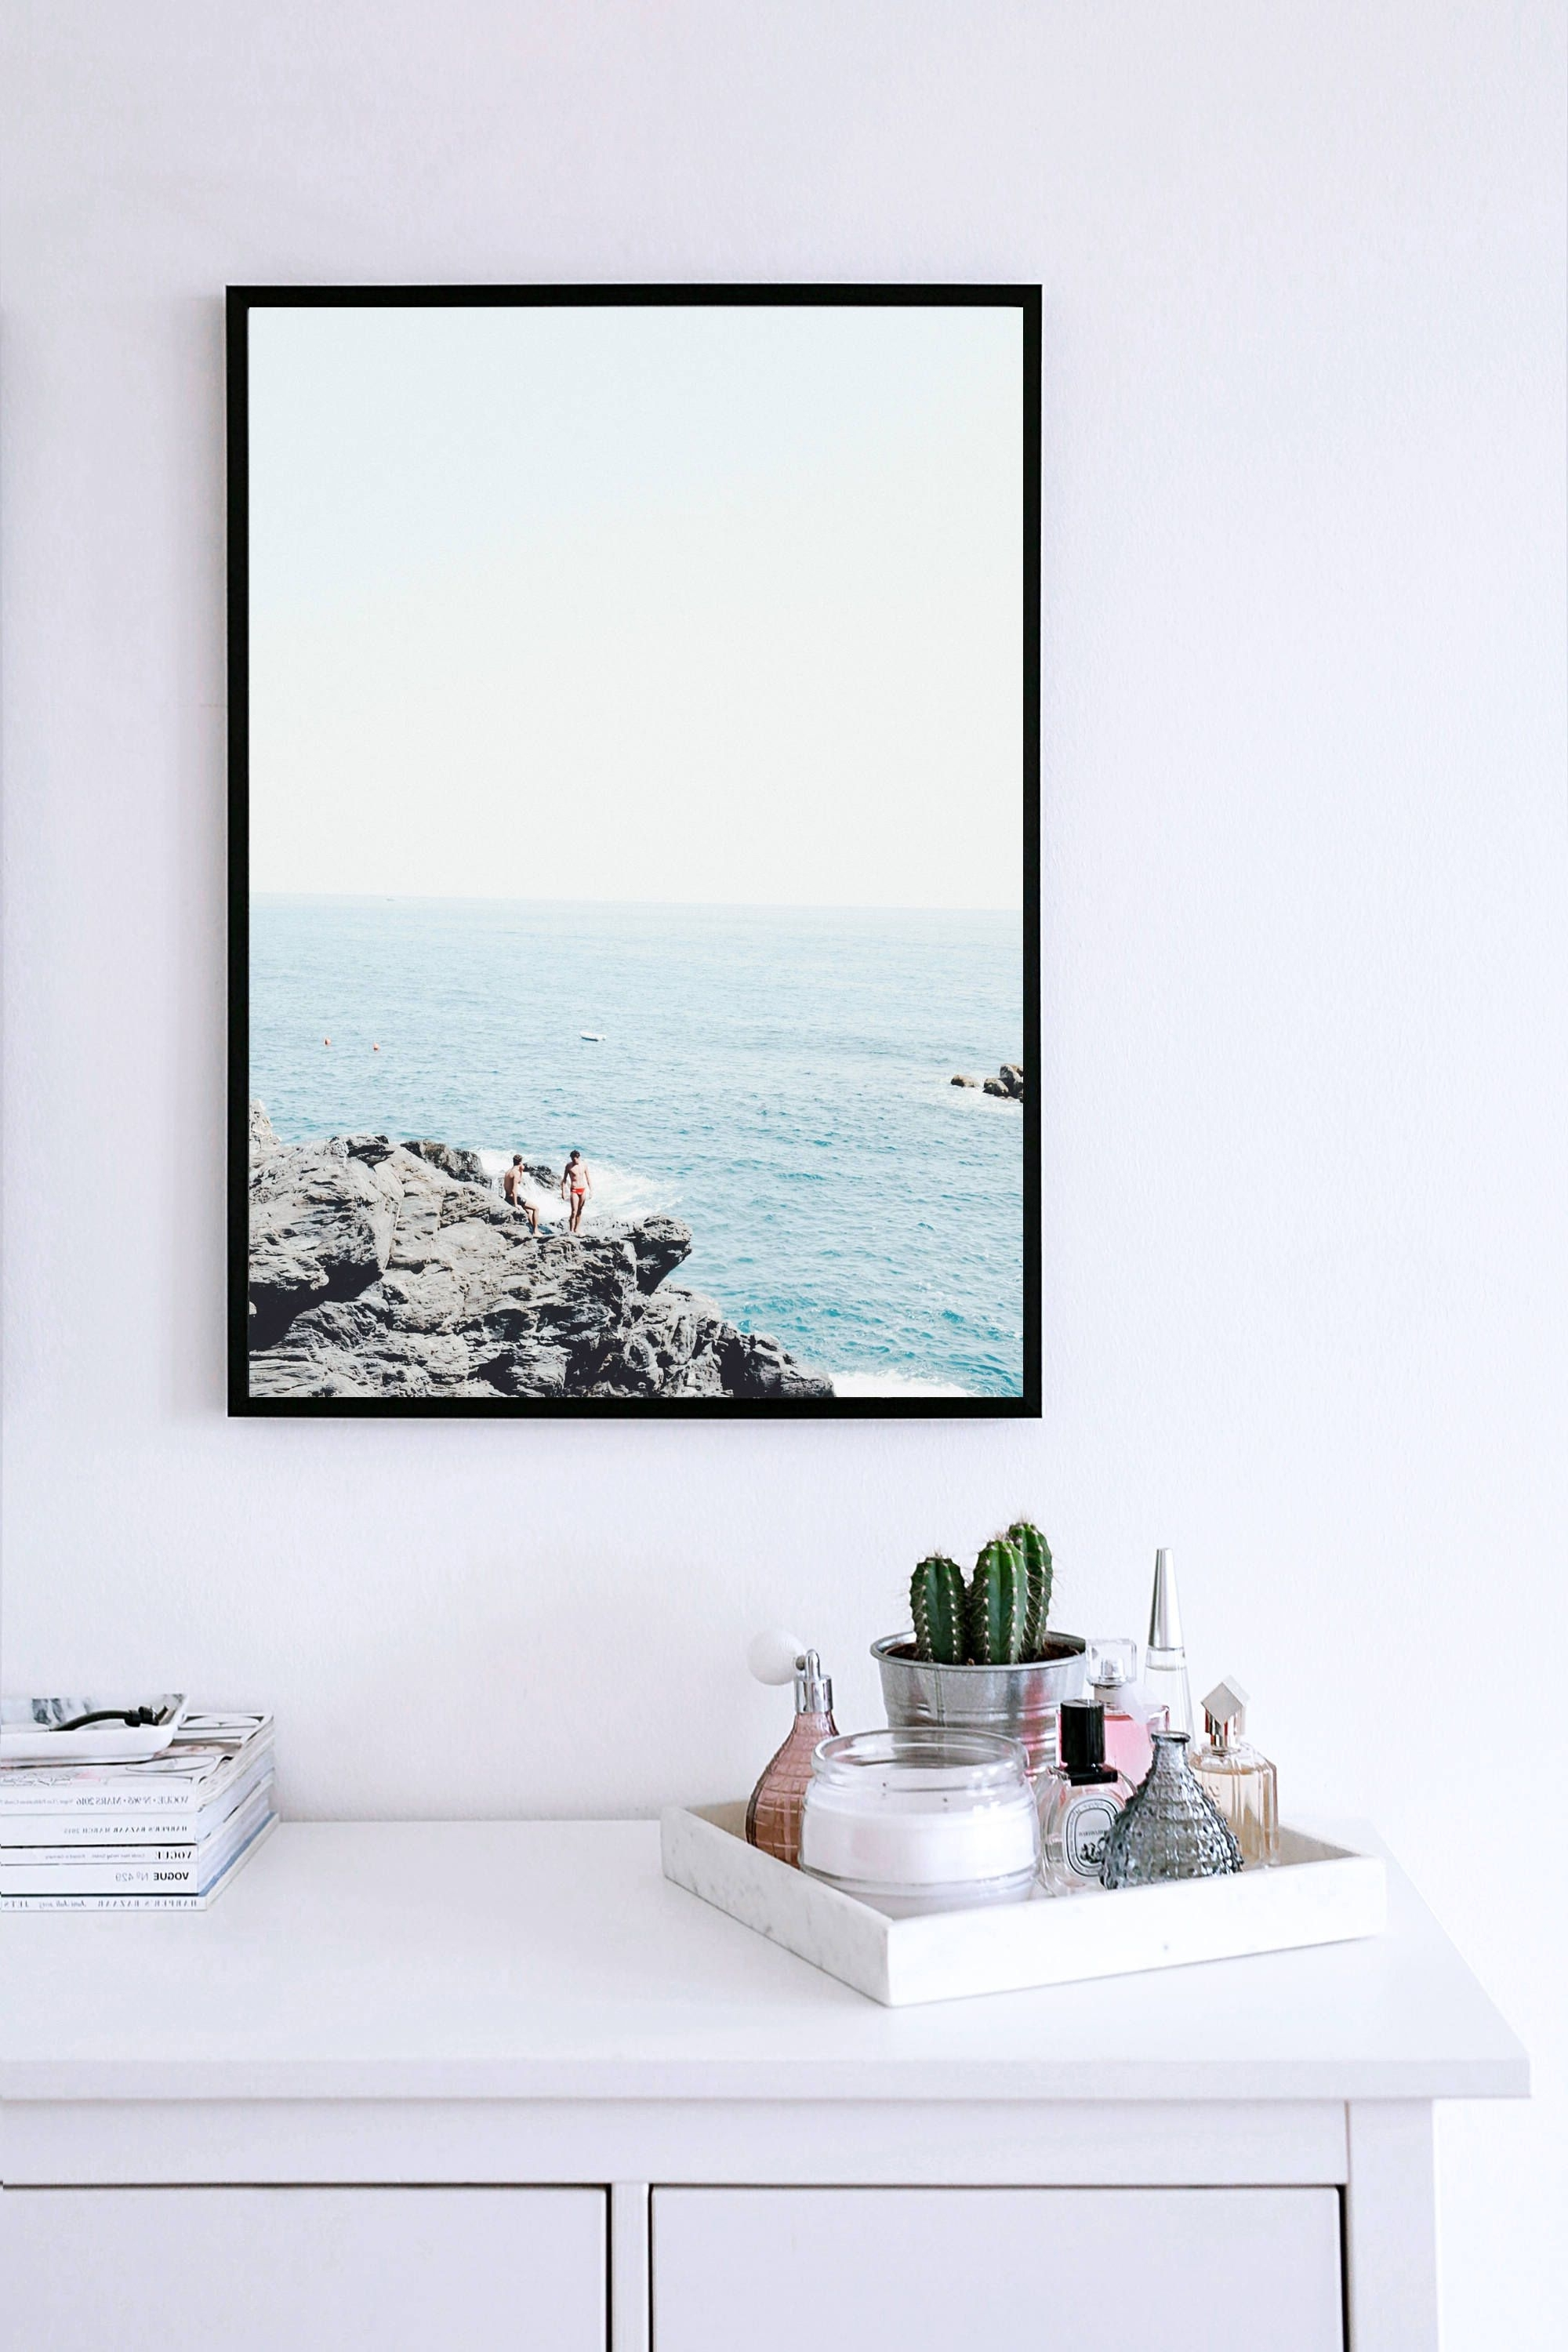 Most Recent Beach Print, Nature Wall Art Prints, Photography Prints, Coastal Pertaining To Nature Wall Art (Gallery 18 of 20)